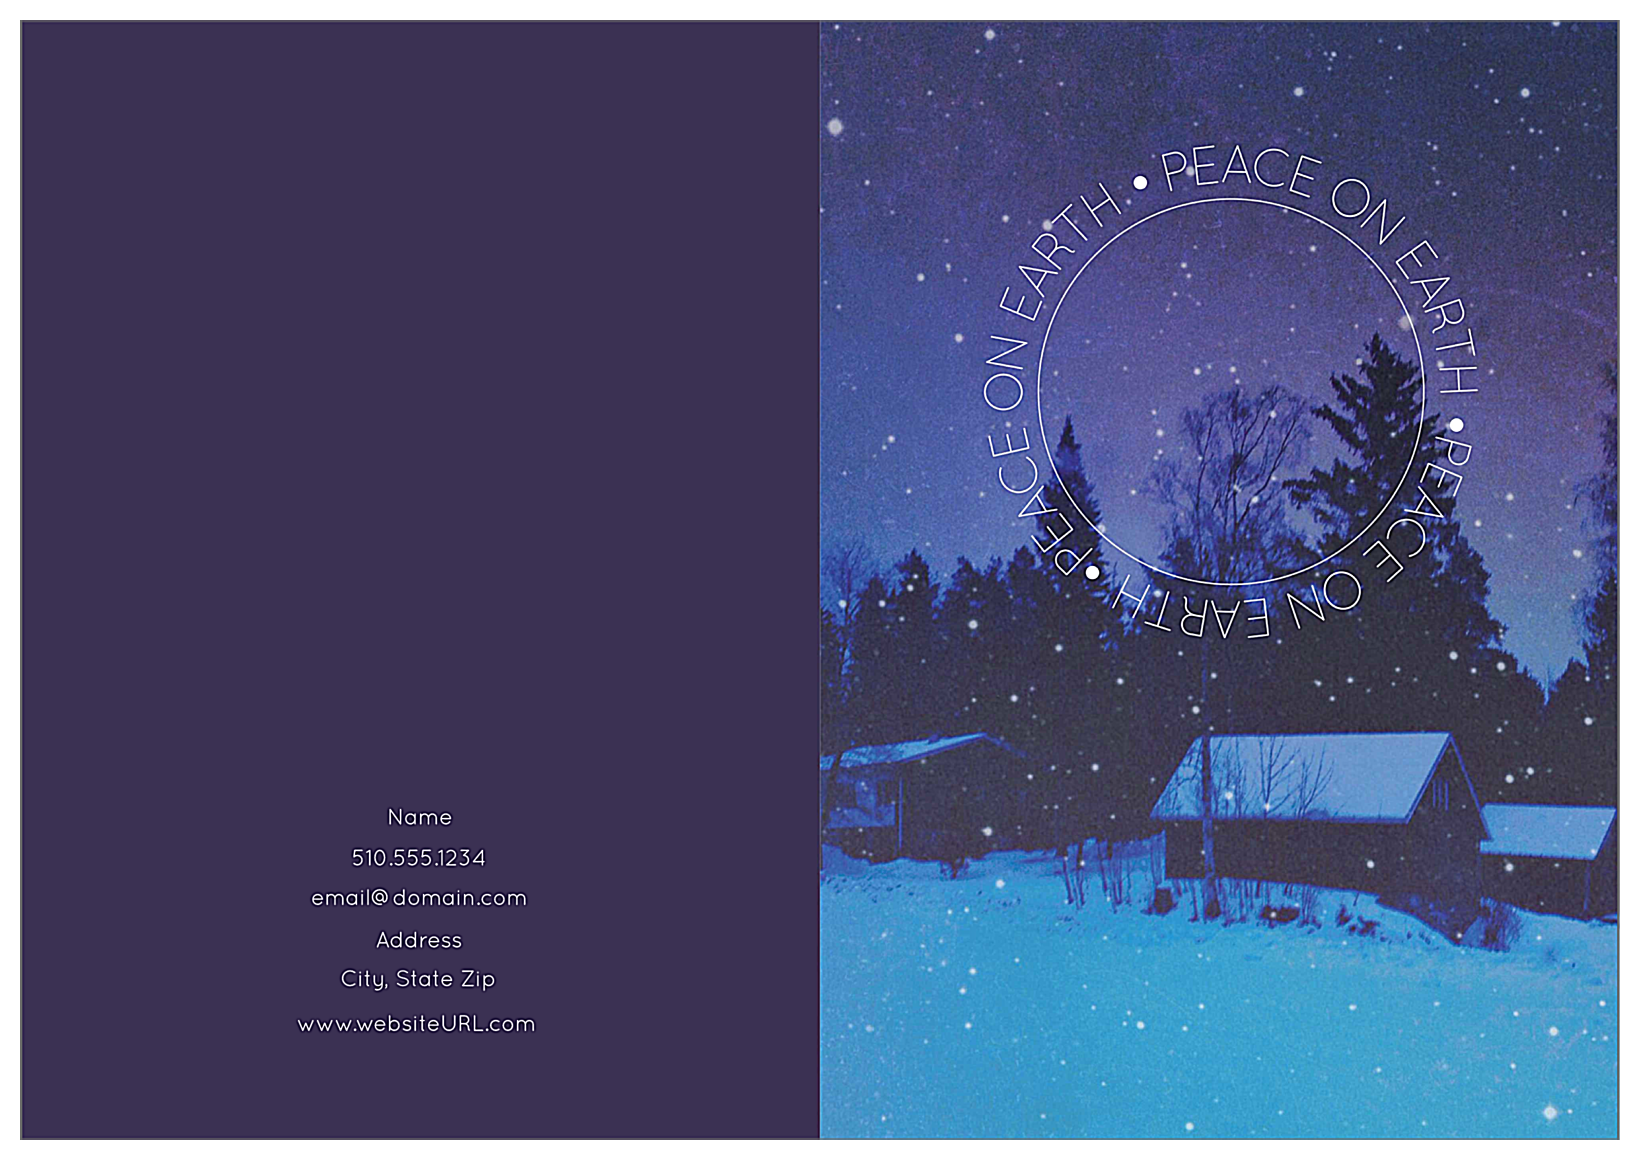 Peaceful Snow front - Greeting Cards Maker